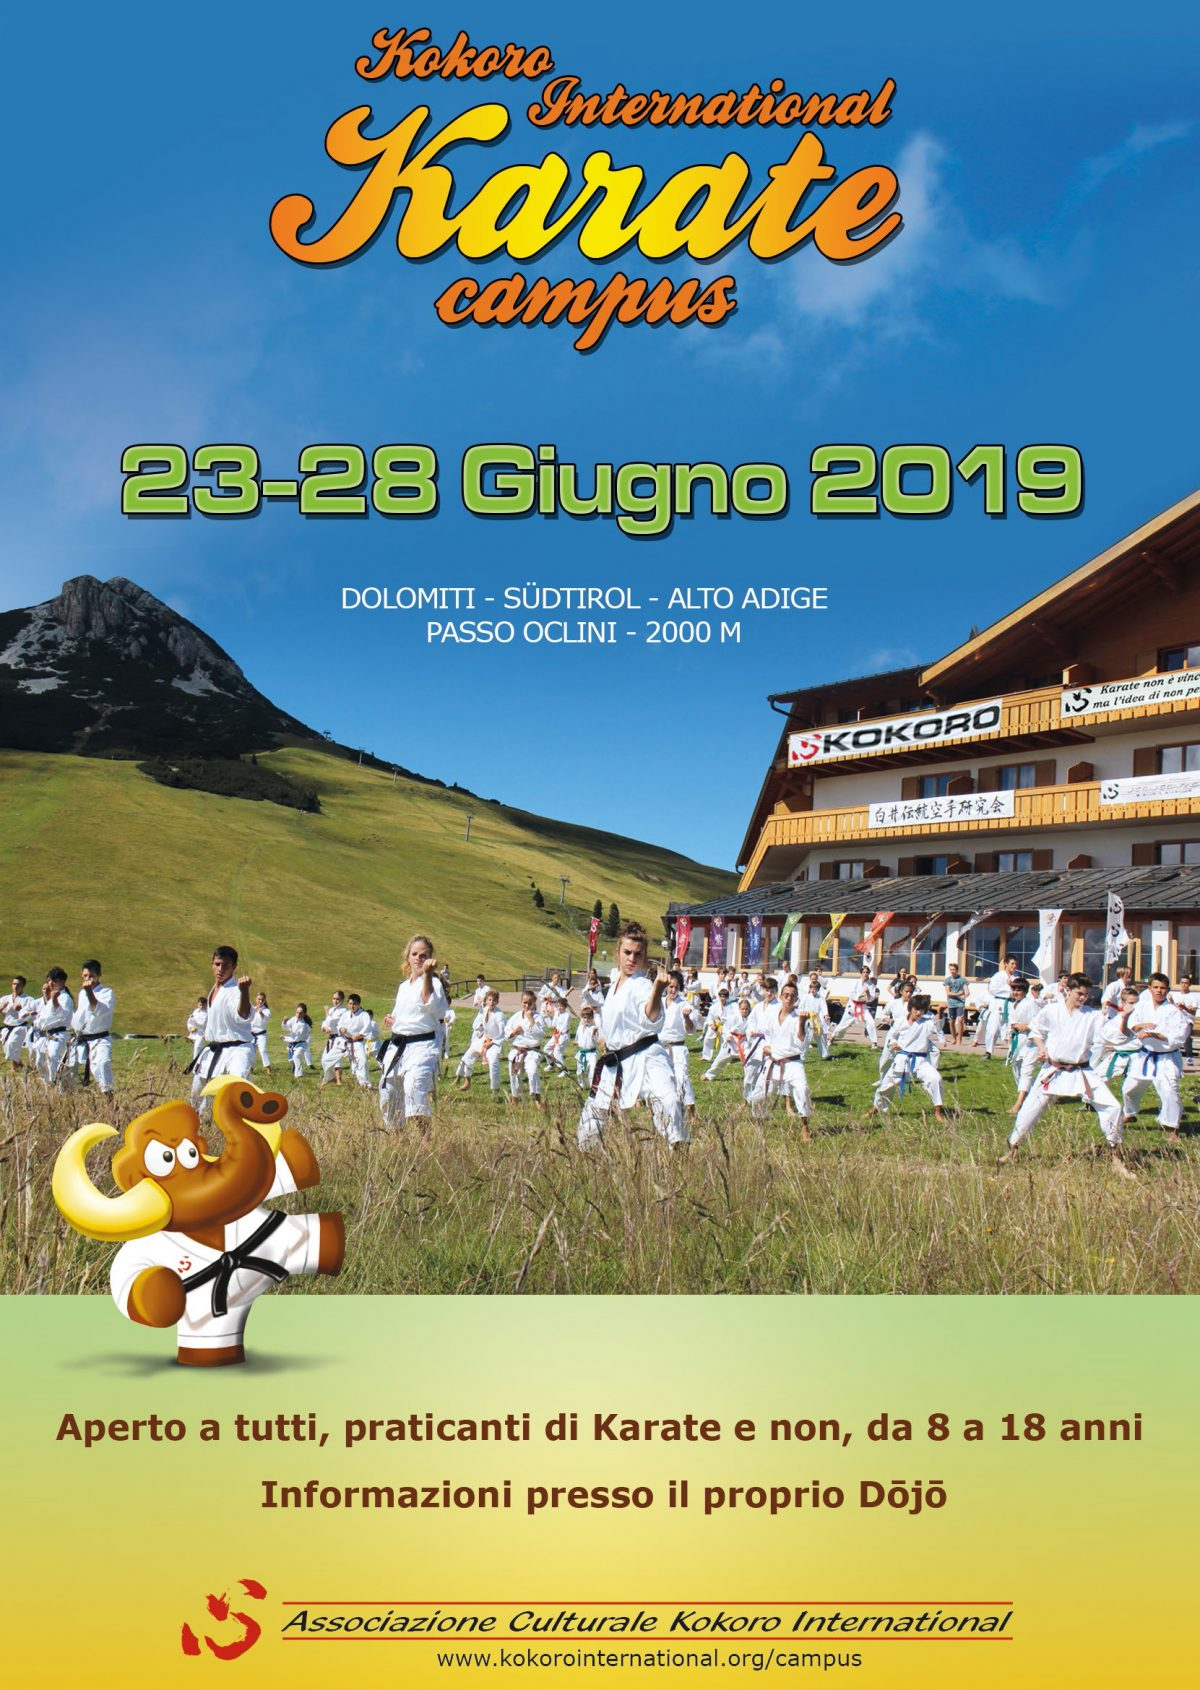 Kokoro International Karate Campus 2019: Quest'anno a giugno!